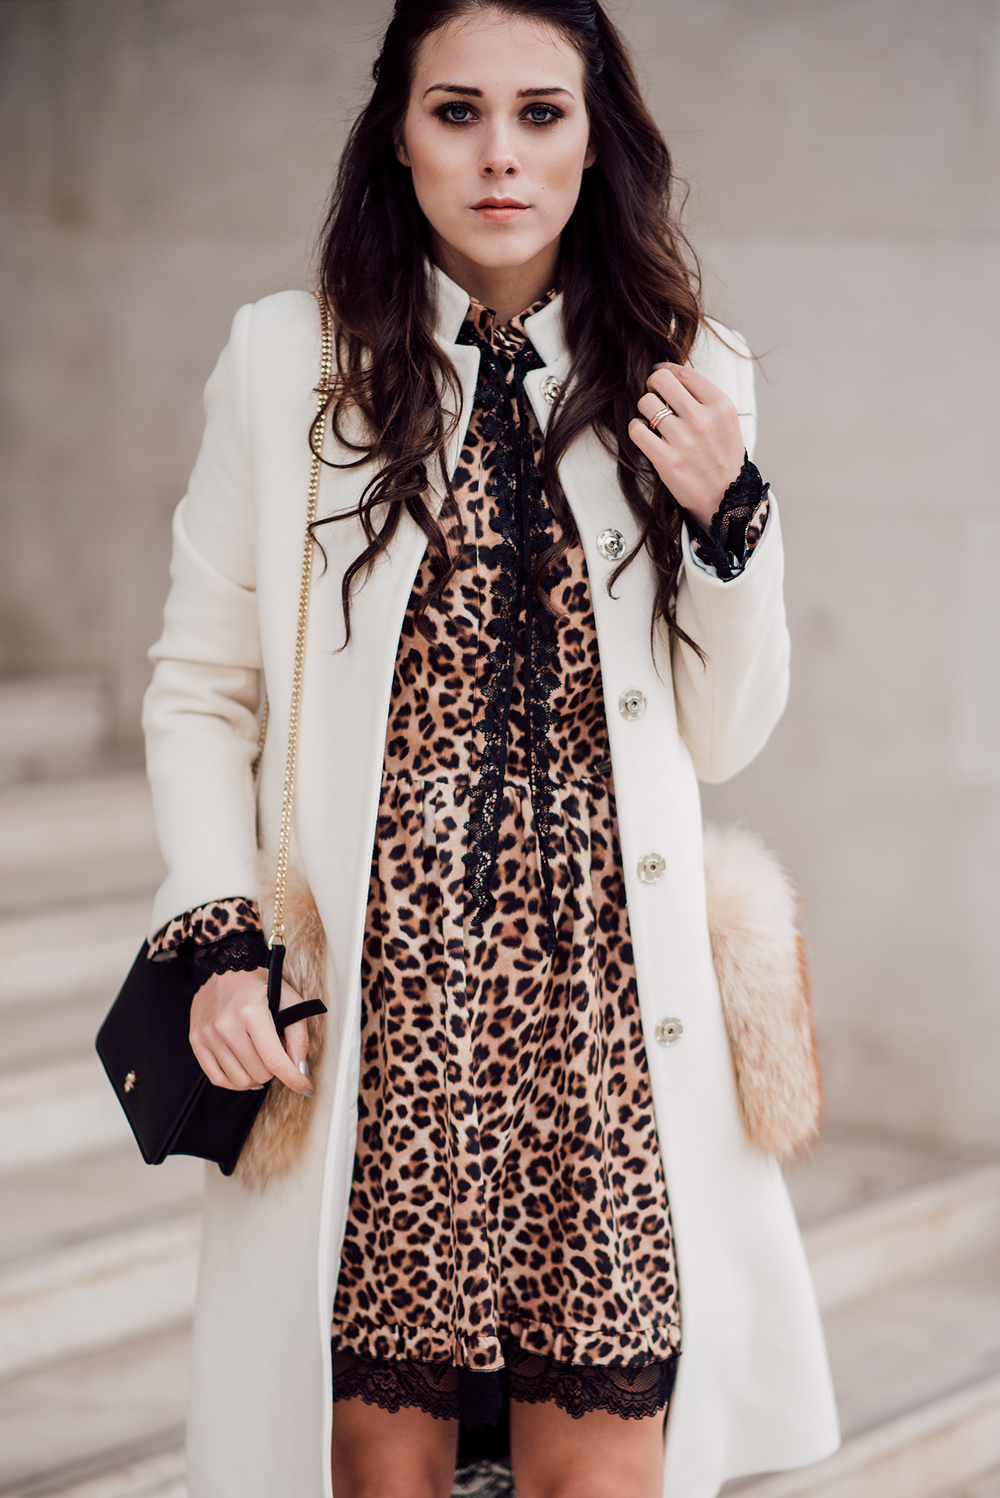 eva-ahacevcic_love-eva_terminal3_ootd_leopard-print_dress_fashion-blogger-1